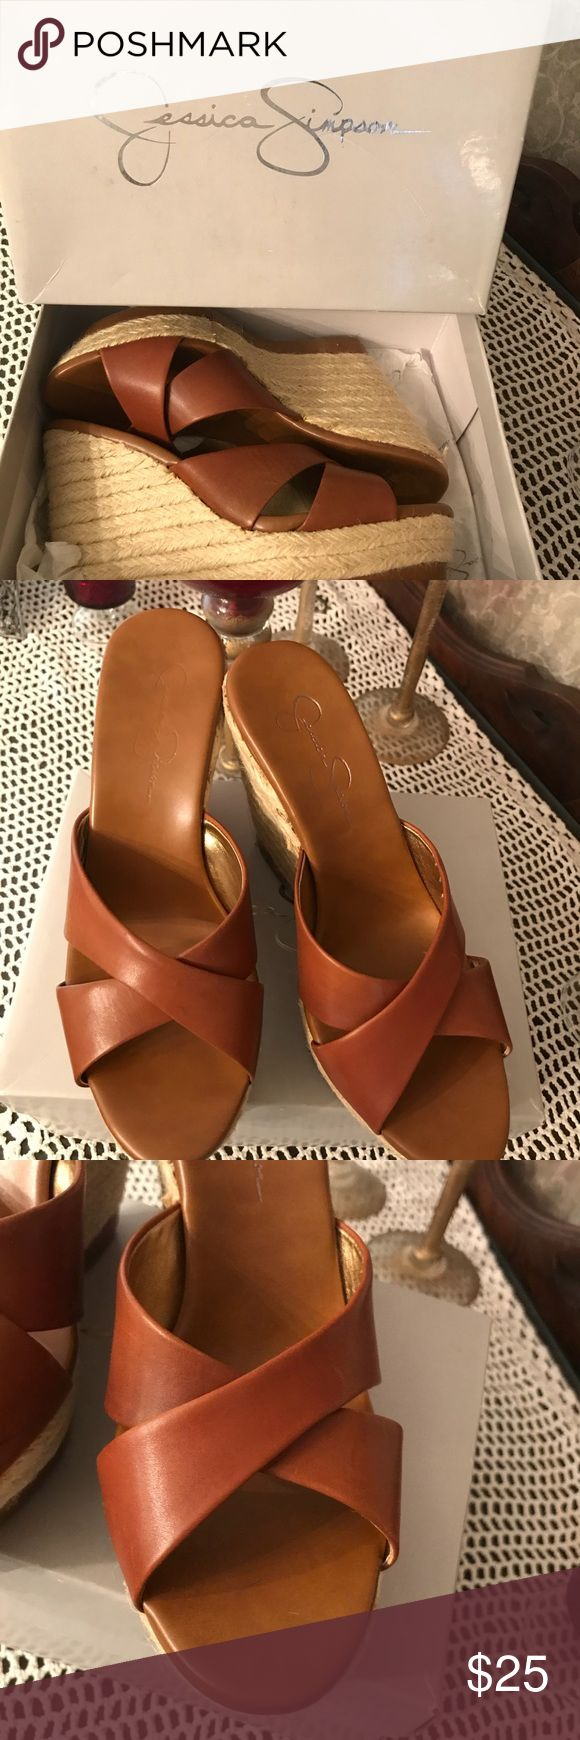 SUPER CUTE Jessica Simpson wedges Jessica Simpson wedge shoes - lightly worn - great Preloved condition. Desert sand color. Does has a small ink spot on one of the shoes but isn't noticeable when worn. AWESOME shoes!! Jessica Simpson Shoes Wedges